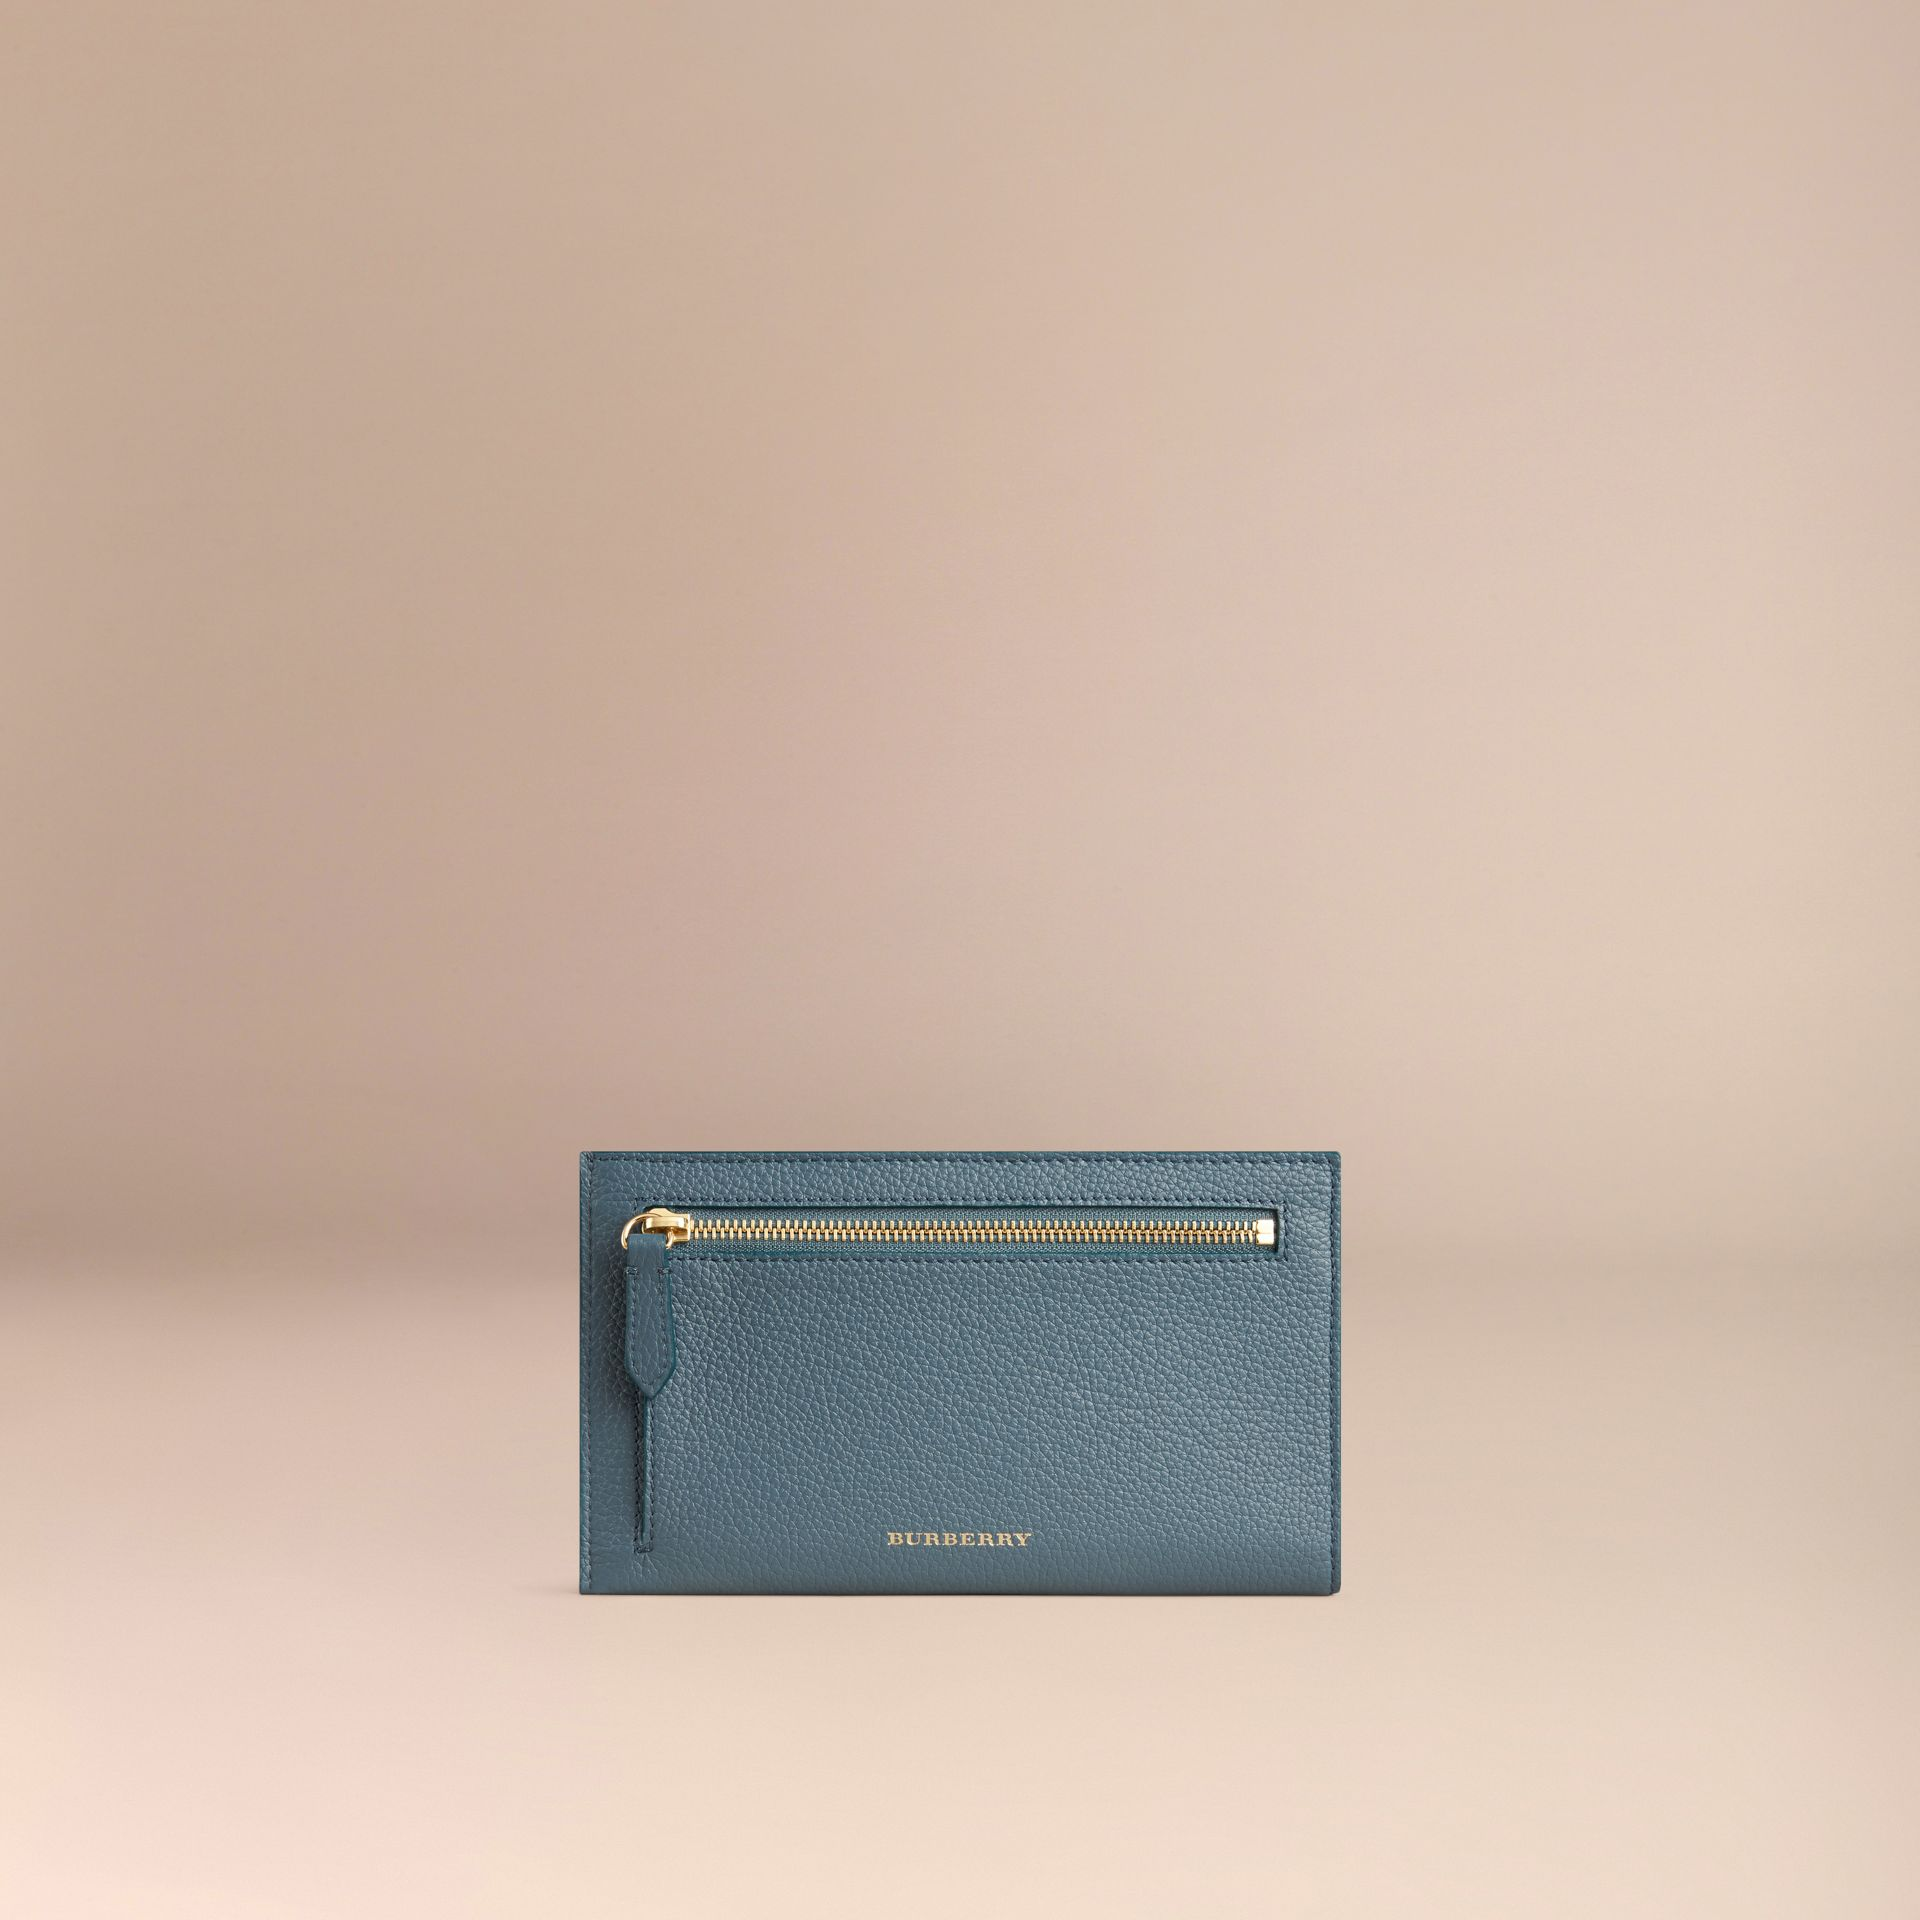 Grainy Leather Travel Case in Dusty Teal | Burberry Australia - gallery image 4